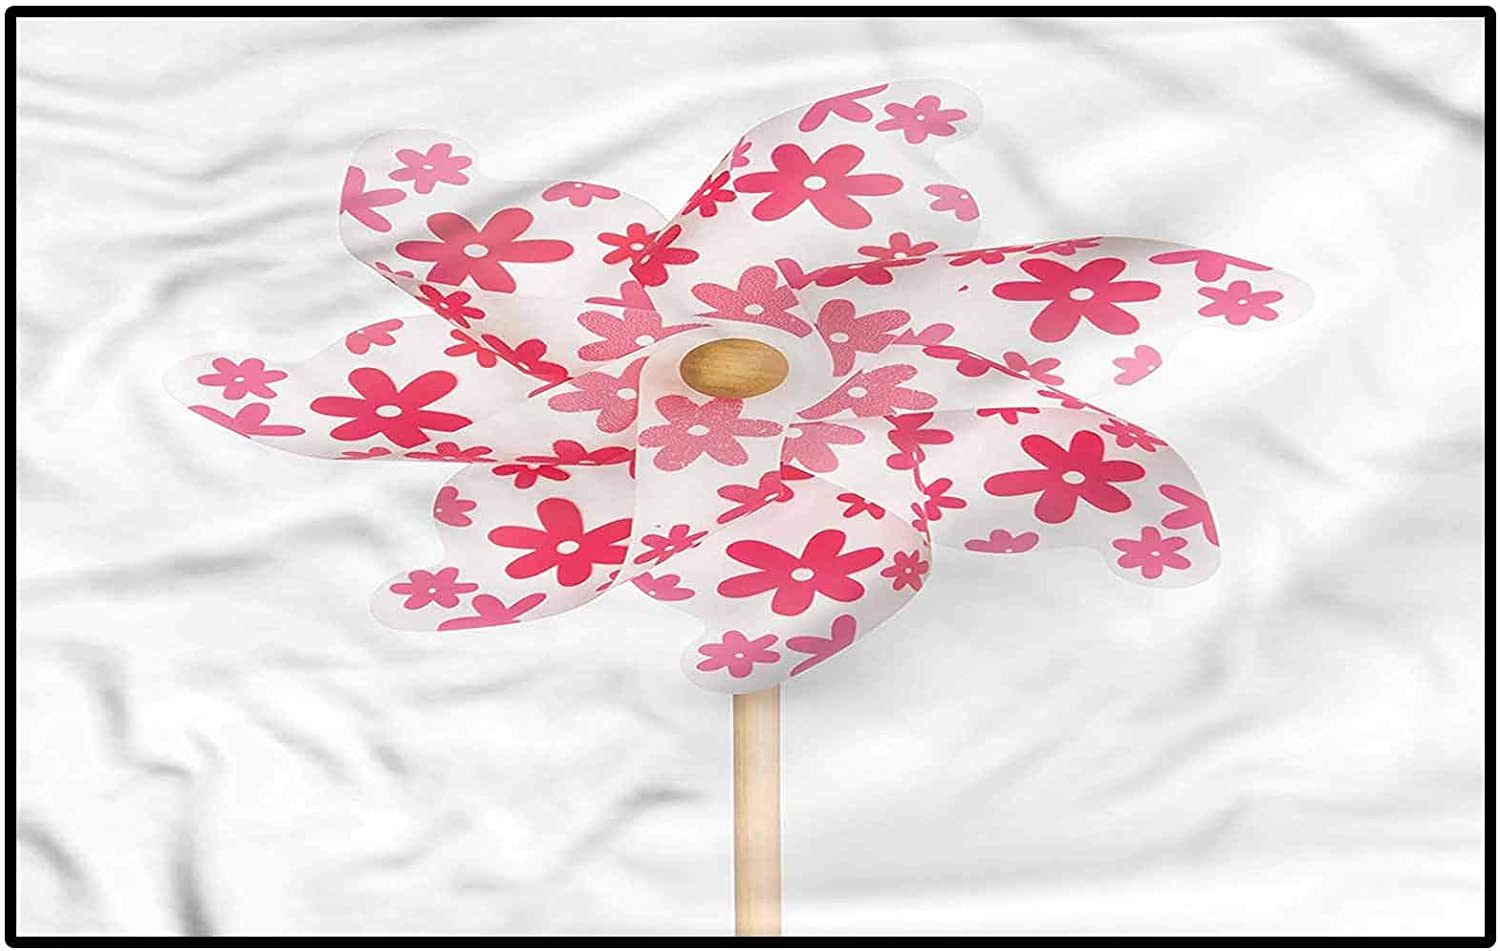 Pinwheel Bath Rugs Non-Slip Entry SALENEW very popular! Rug Pink with Flowers Max 50% OFF Figure O